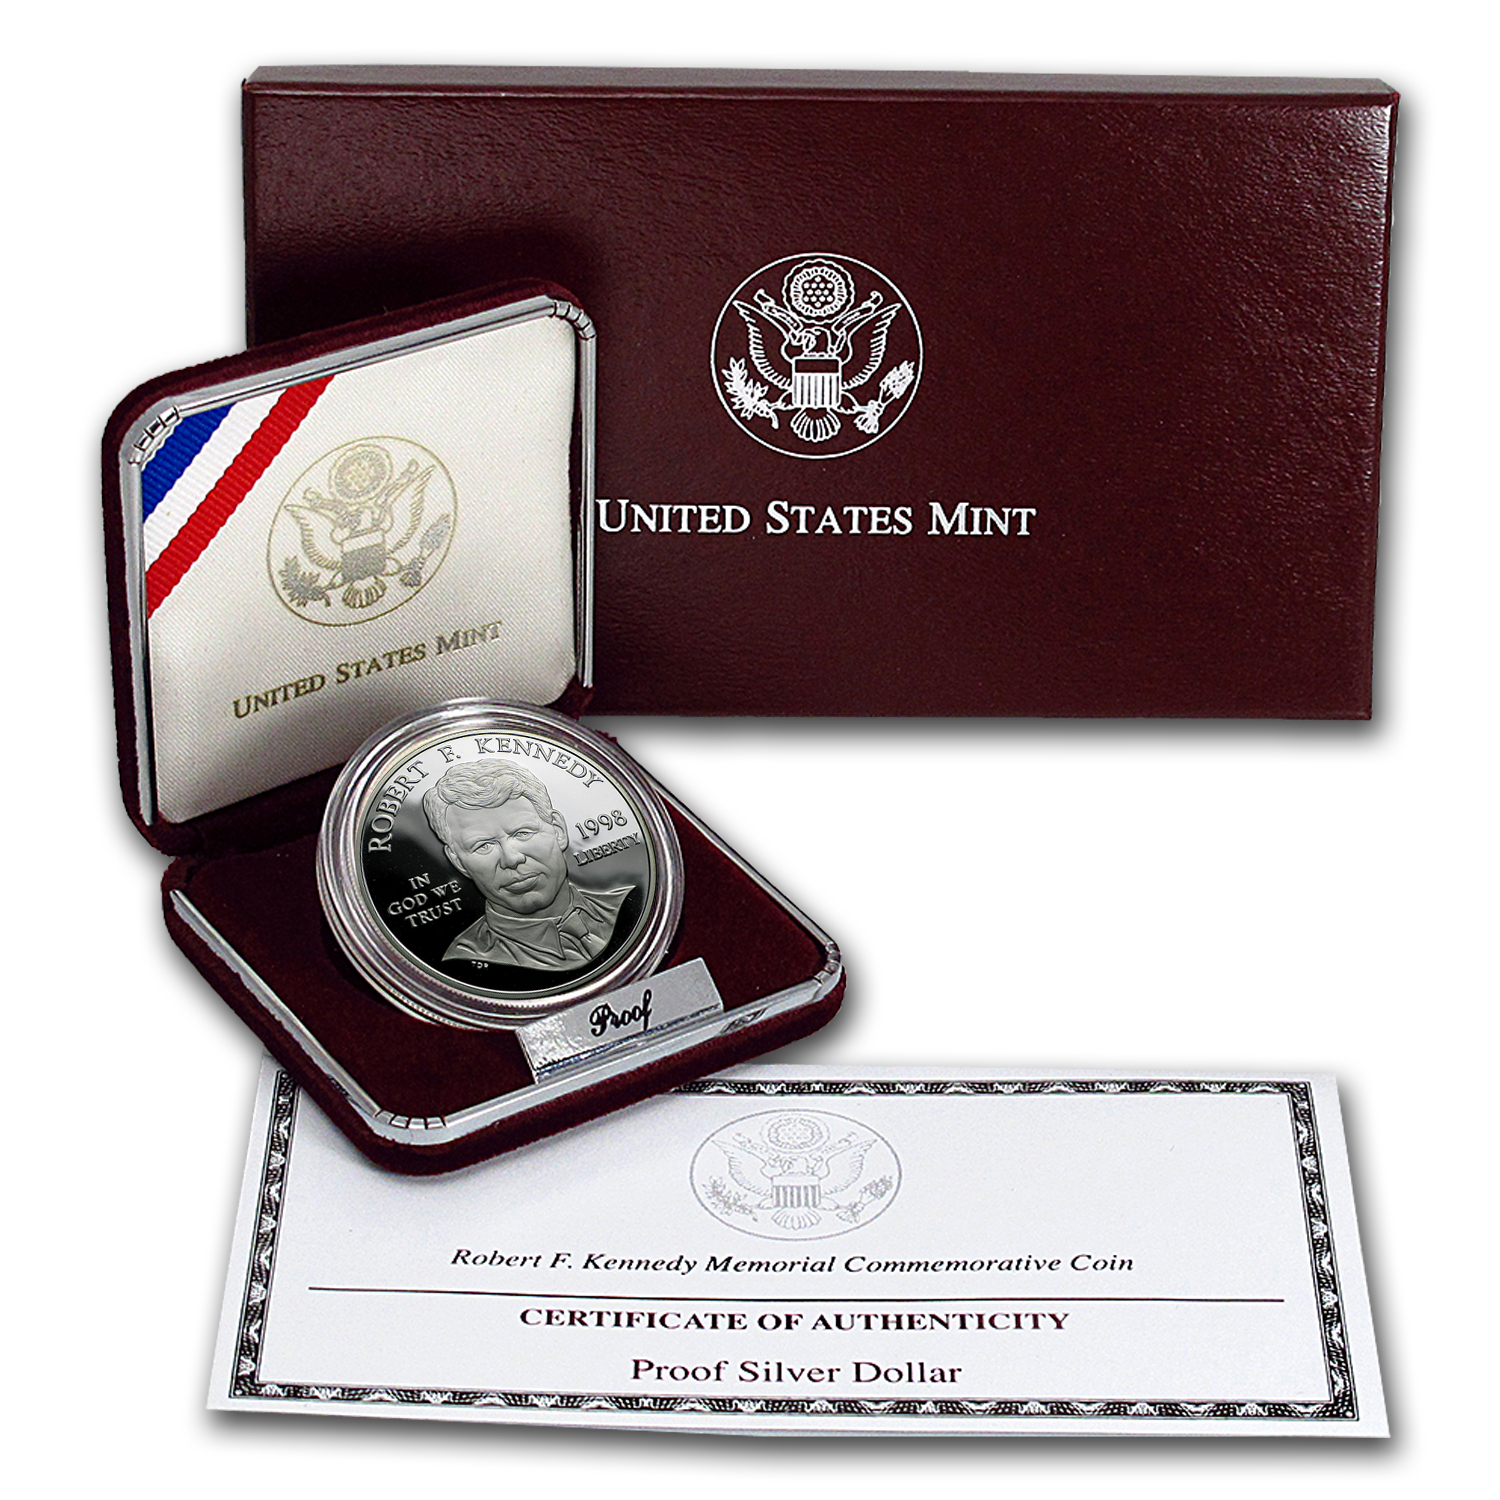 1998-S Robert F. Kennedy $1 Silver Commem Proof (w/Box & COA)